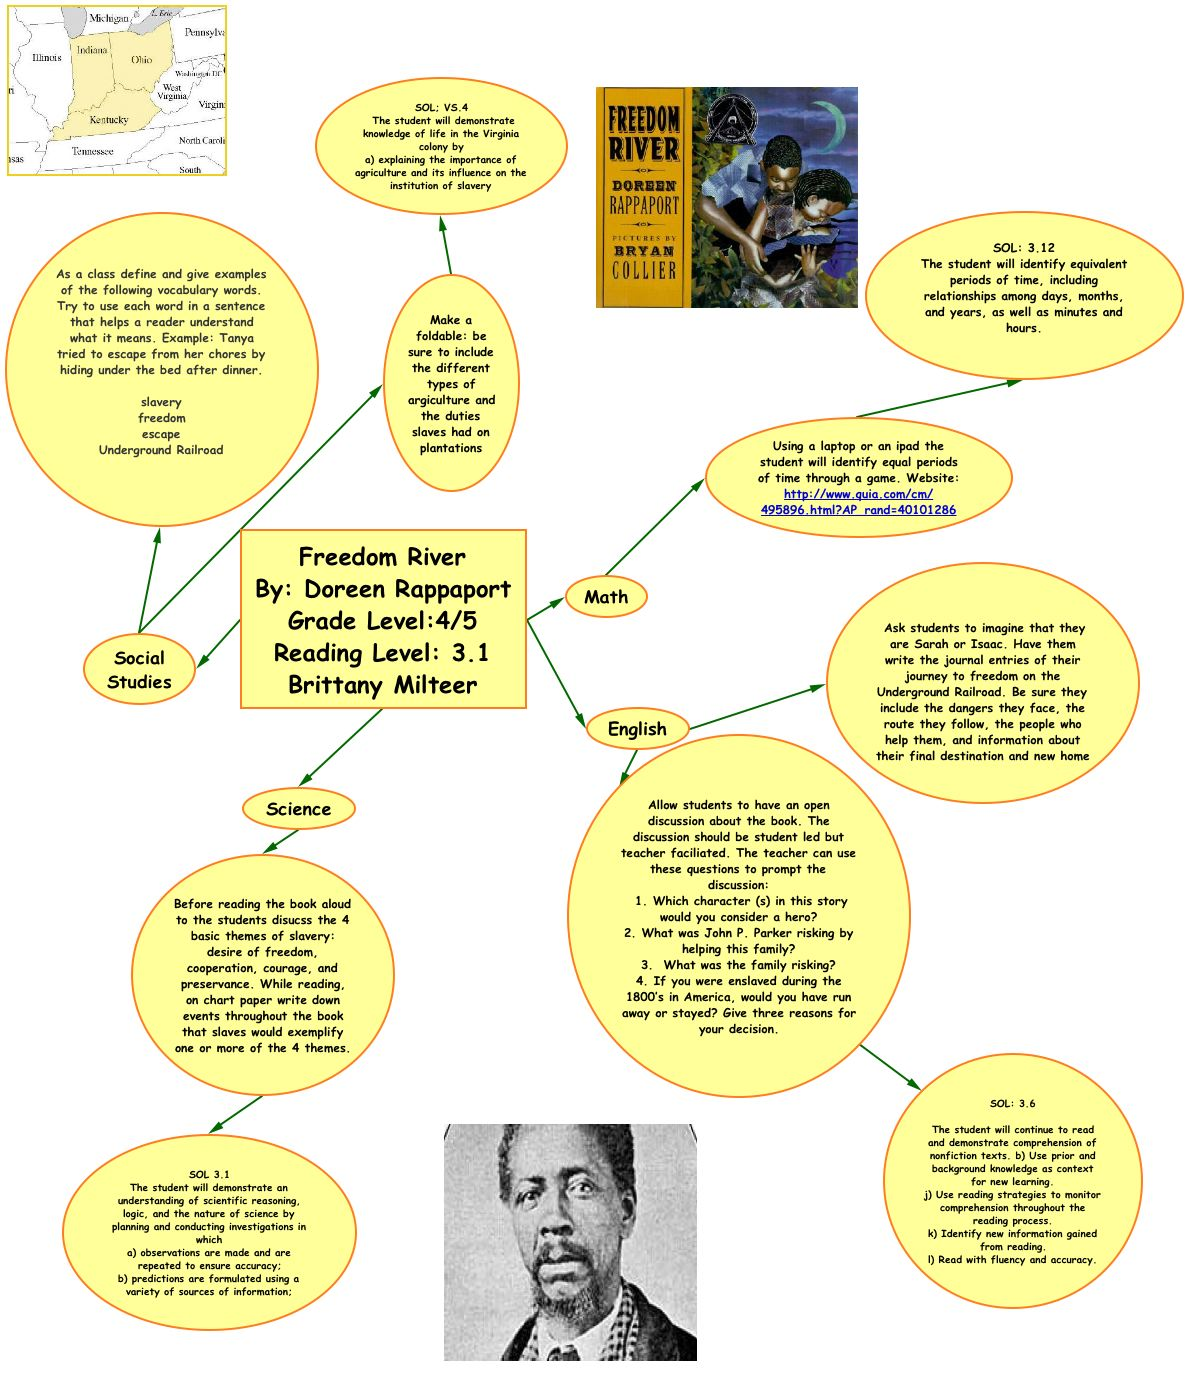 Concept Map Book.Multicultural Concept Map Brittany Michaele Milteer